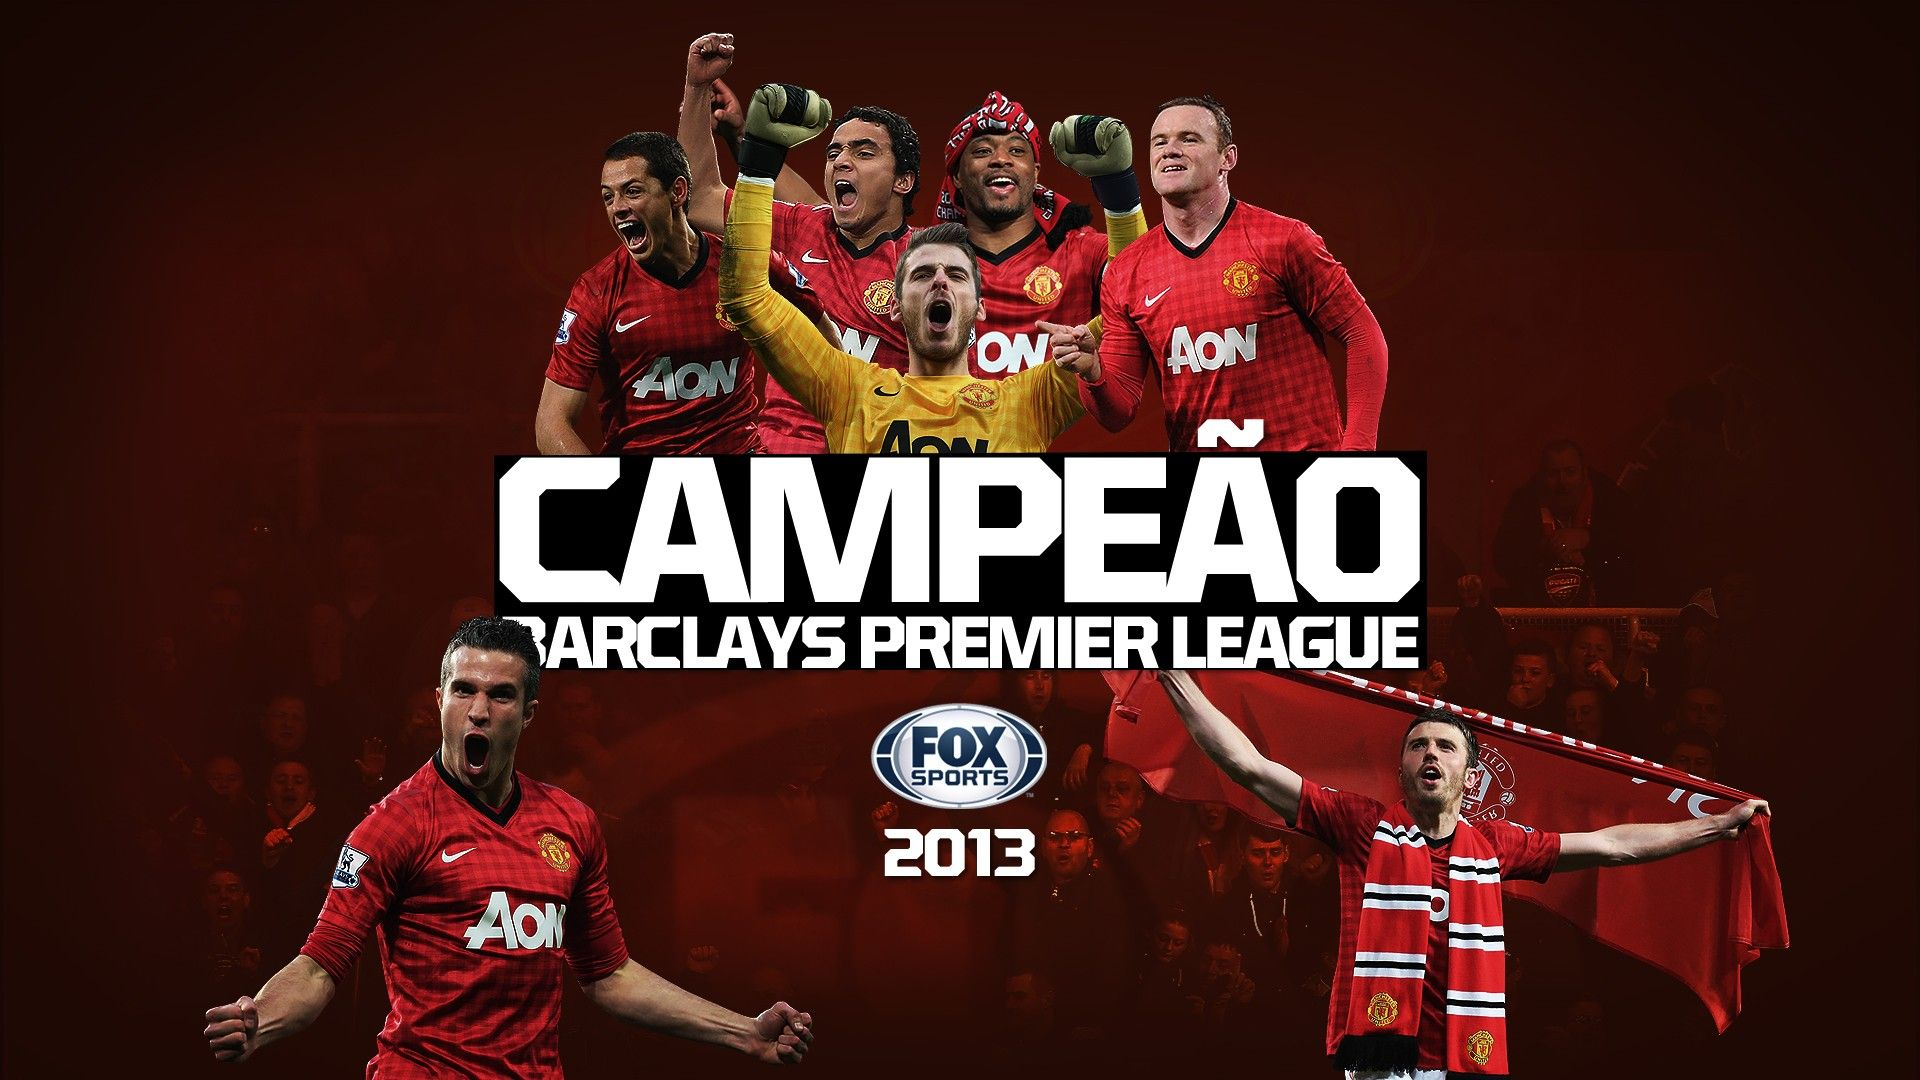 Football manchester united fc red devils champions teams utd football manchester united fc red devils champions teams utd premier league soccer sports wallpapers voltagebd Image collections